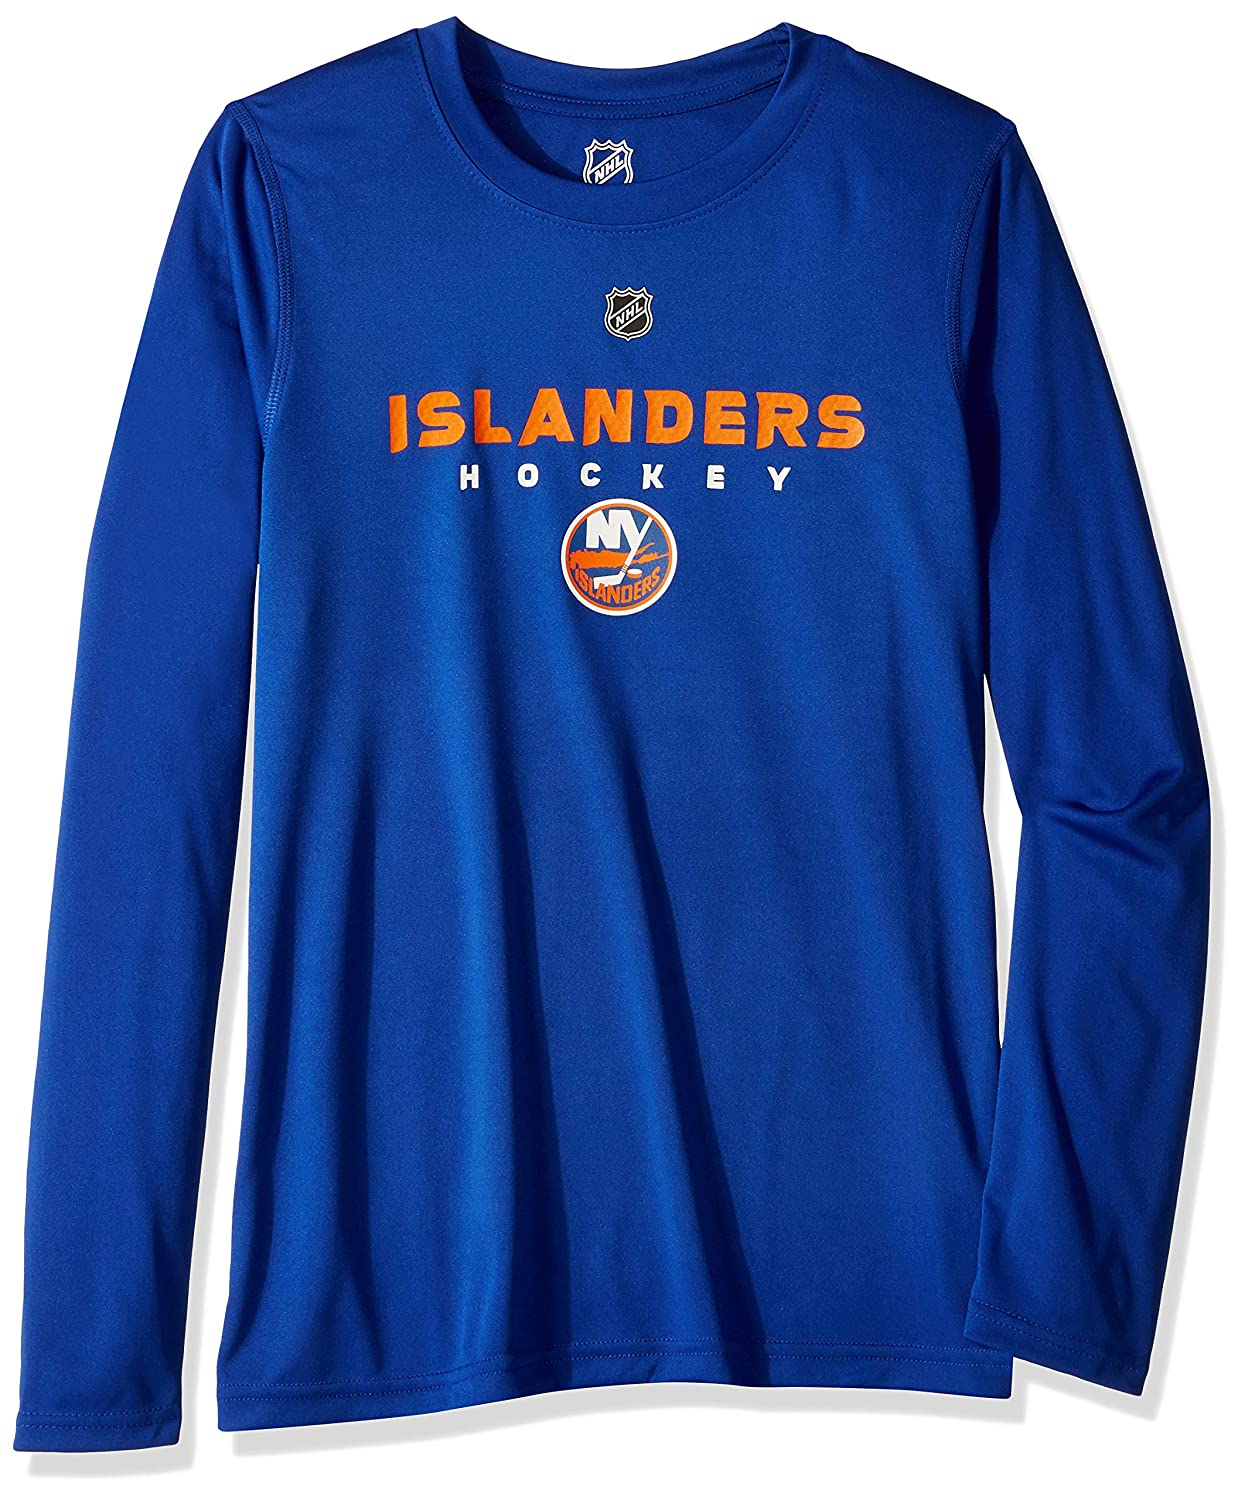 Royal Outerstuff NHL NHL New York Islanders Youth Boys Hyper Long Sleeve Performance Tee 8 Youth Small